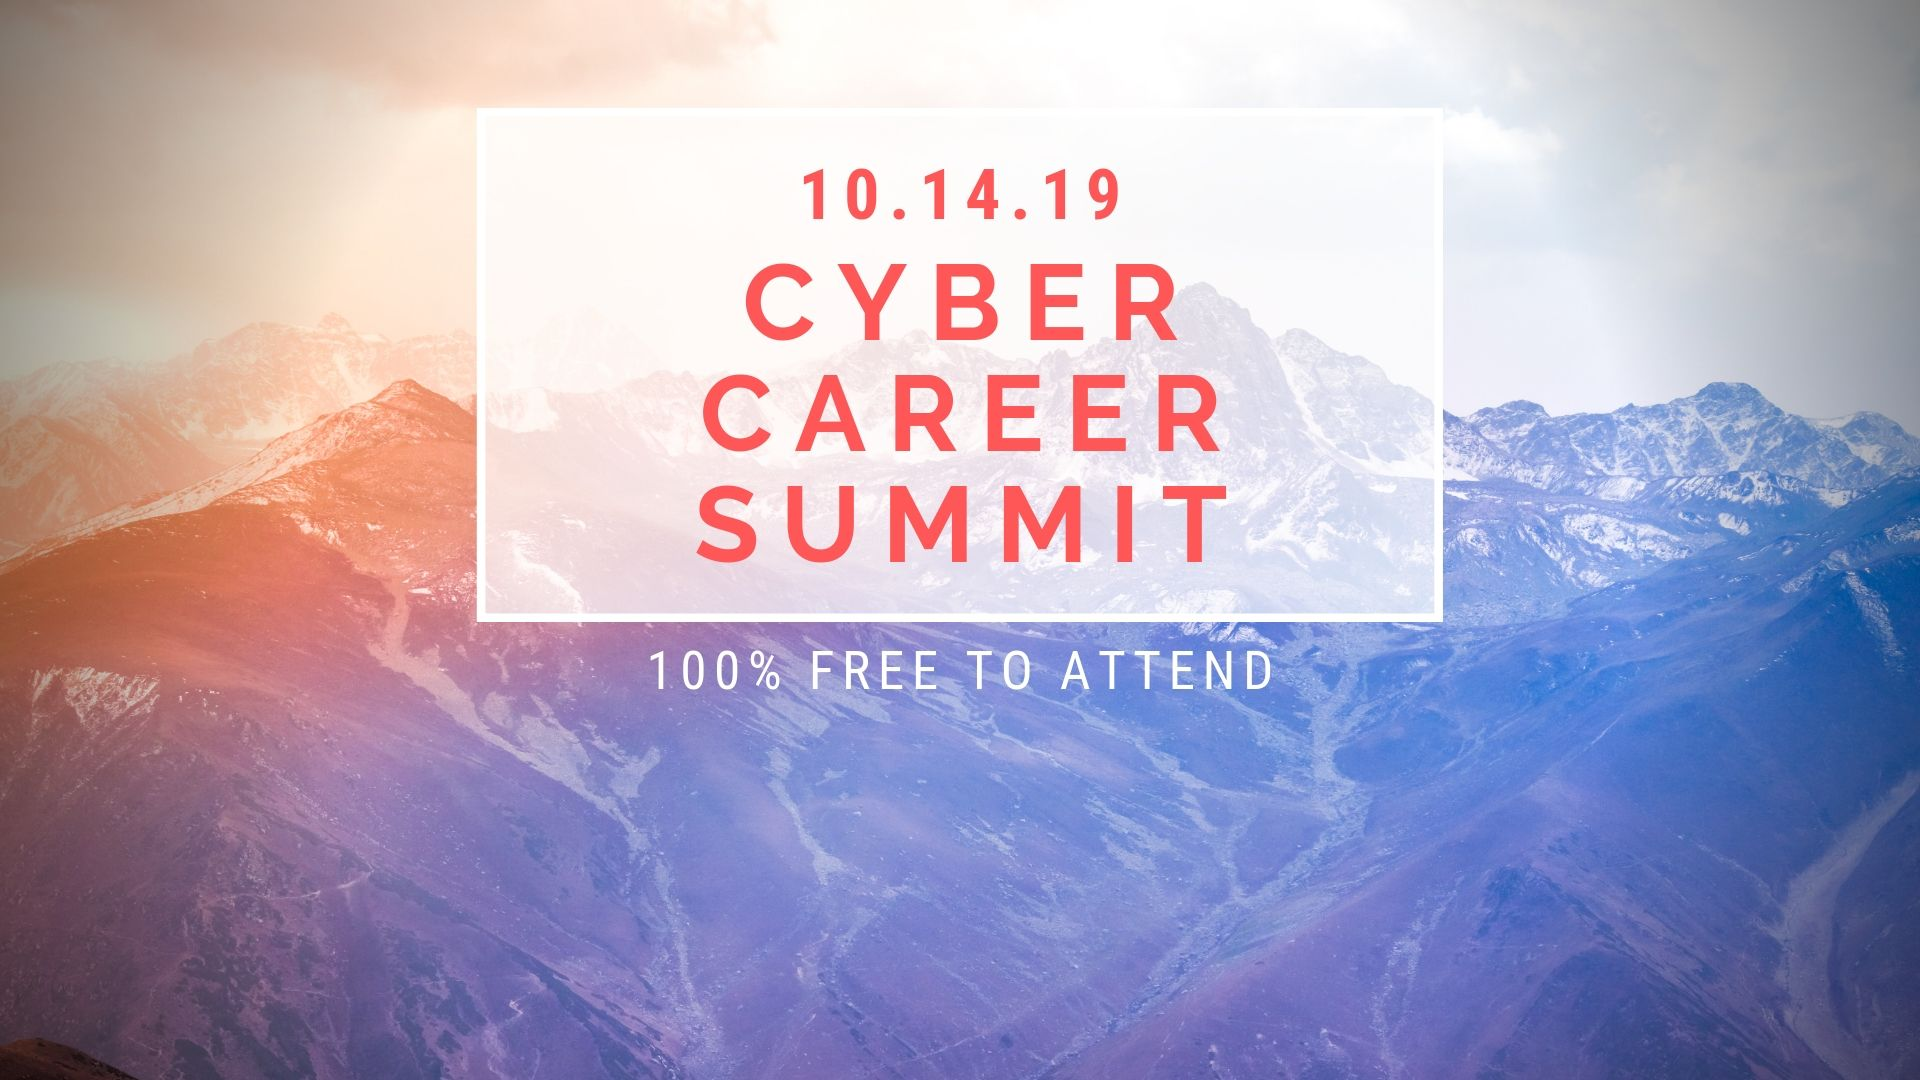 Registration for the #CyberCareerSummit is now open!